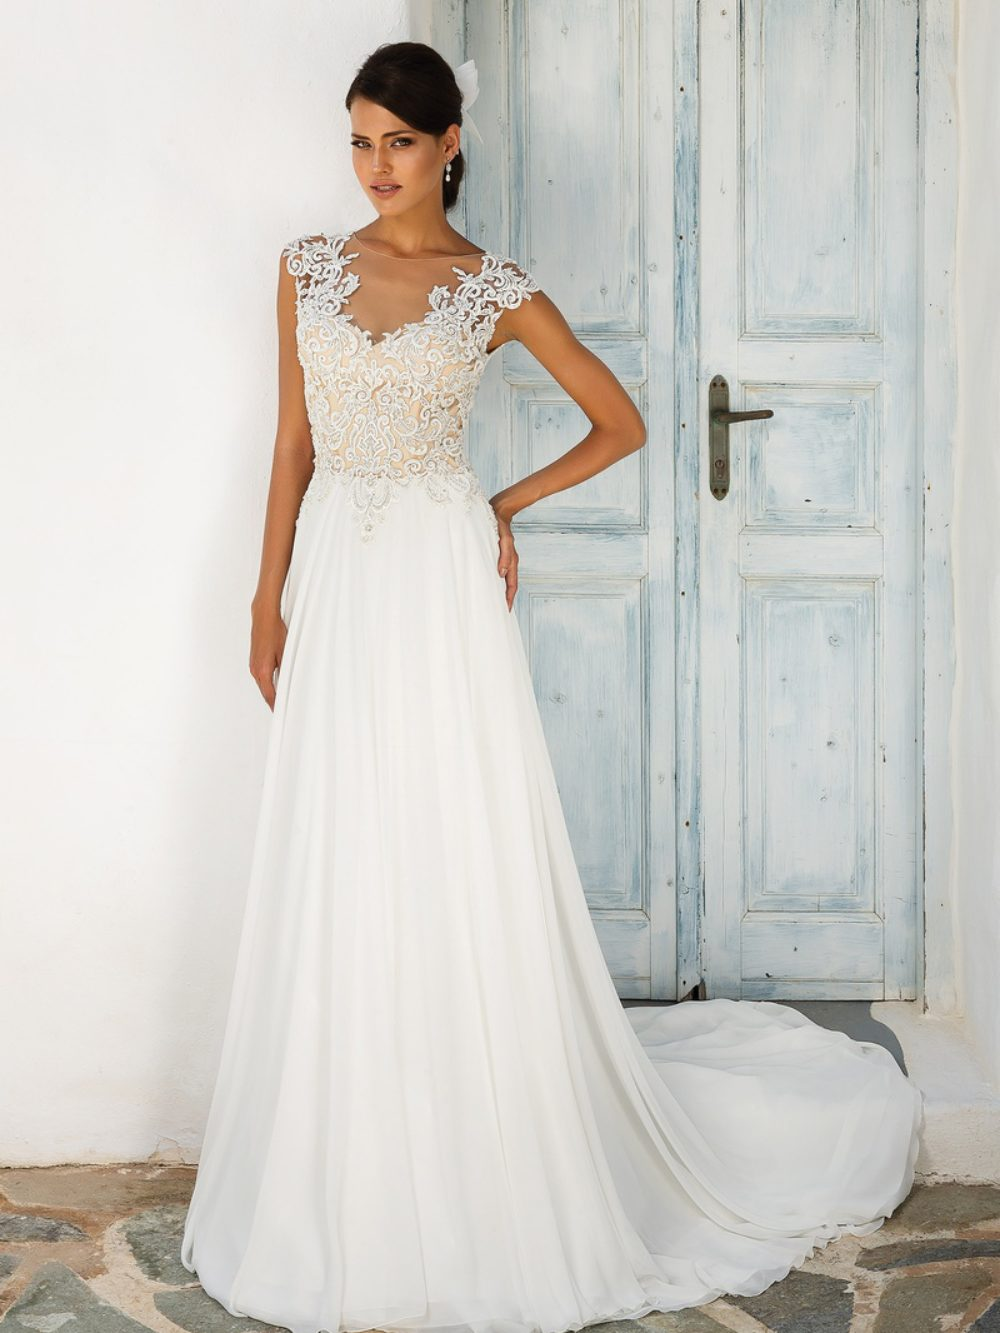 A-line Wedding Dresses ⋆ Precious Memories Bridal Shop